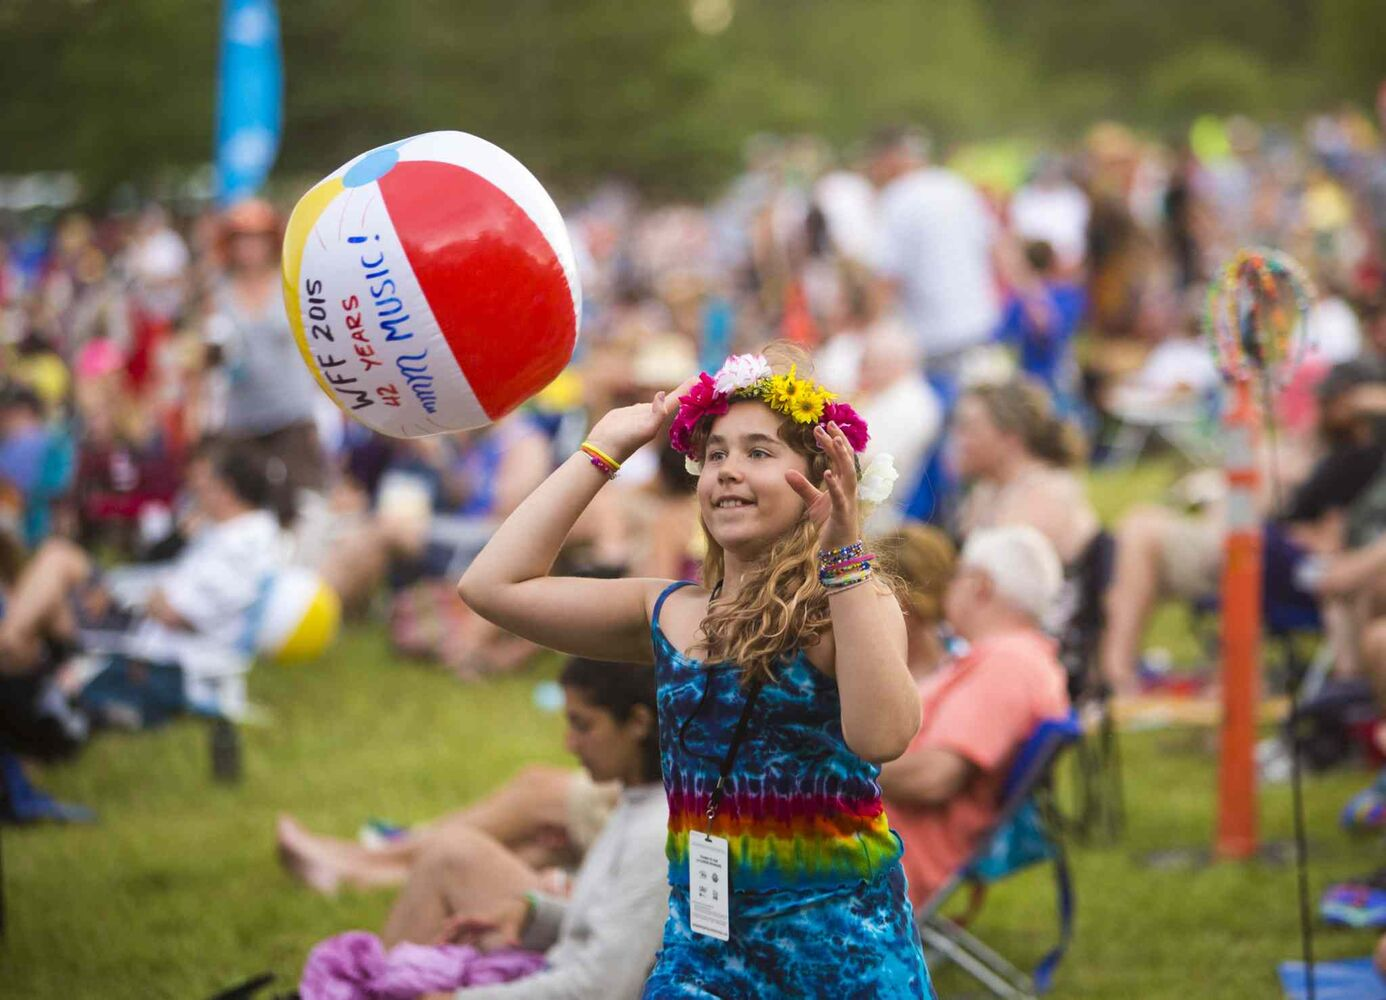 Chiara Kivilaht, 10, tosses a beach ball through the crowd at the Winnipeg Folk Festival at Birds Hill Provincial Park on Saturday, July 11, 2015.   Mikaela MacKenzie / Winnipeg Free Press (Winnipeg Free Press)